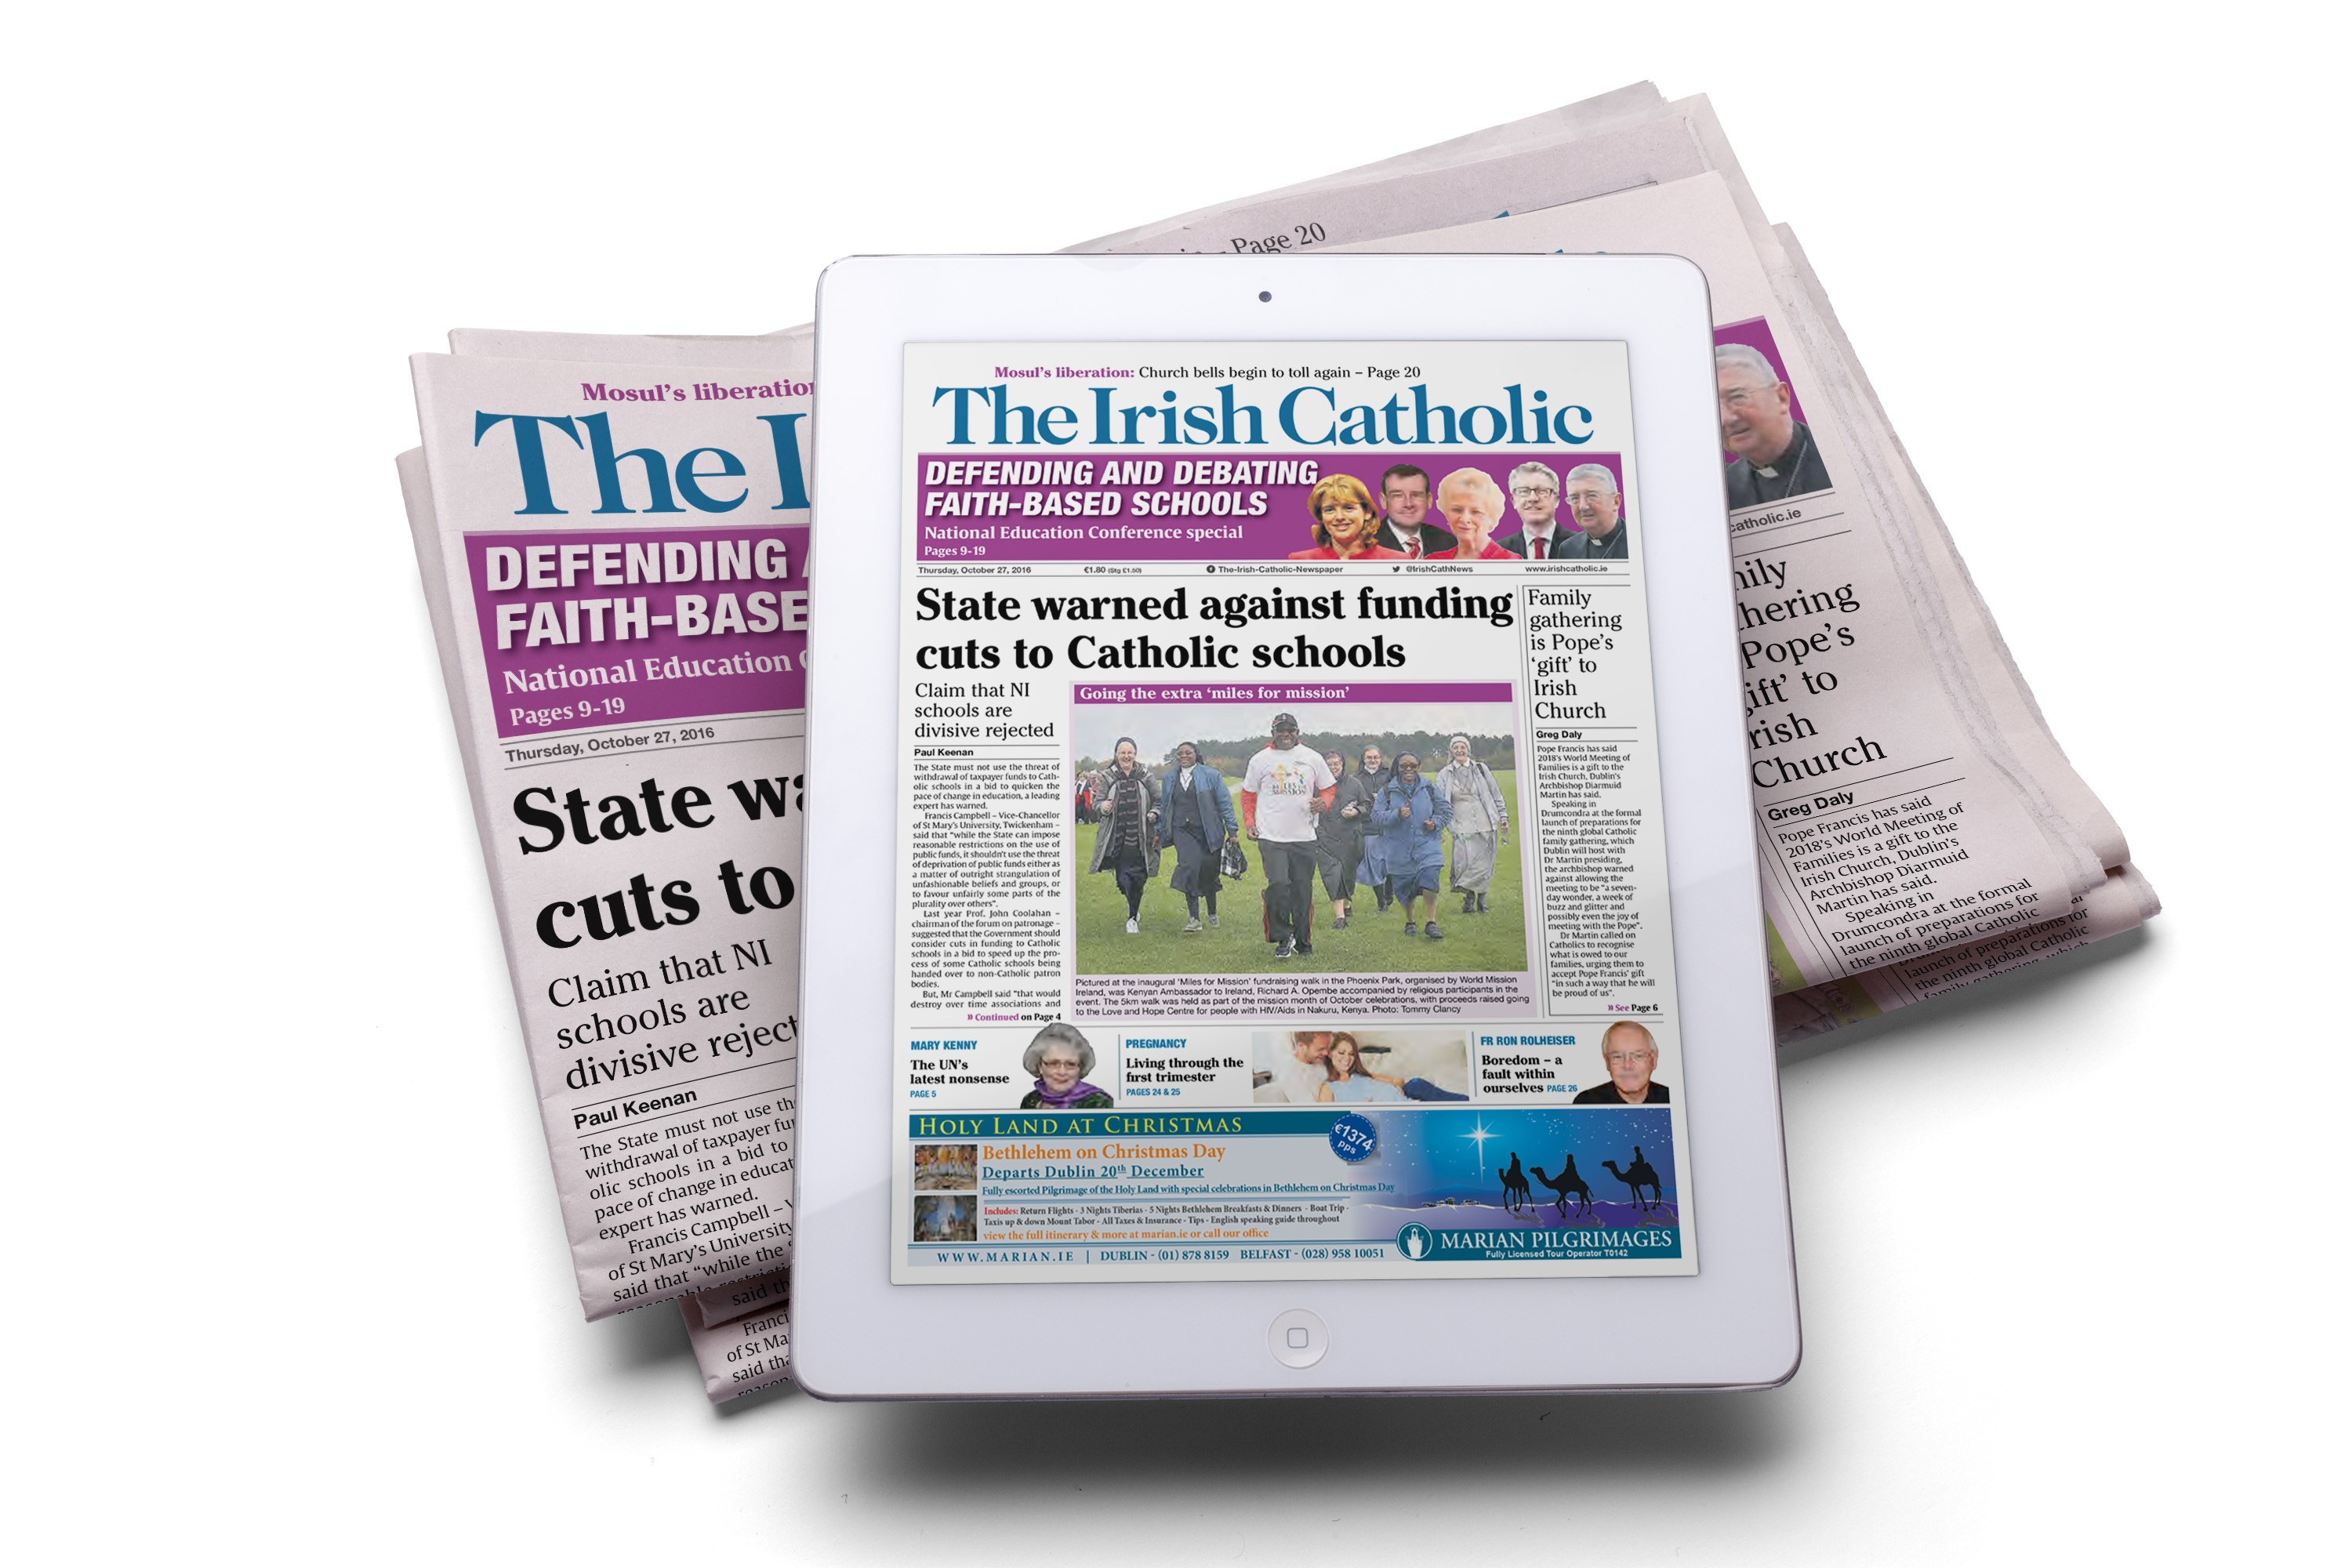 Www irishcatholic ie